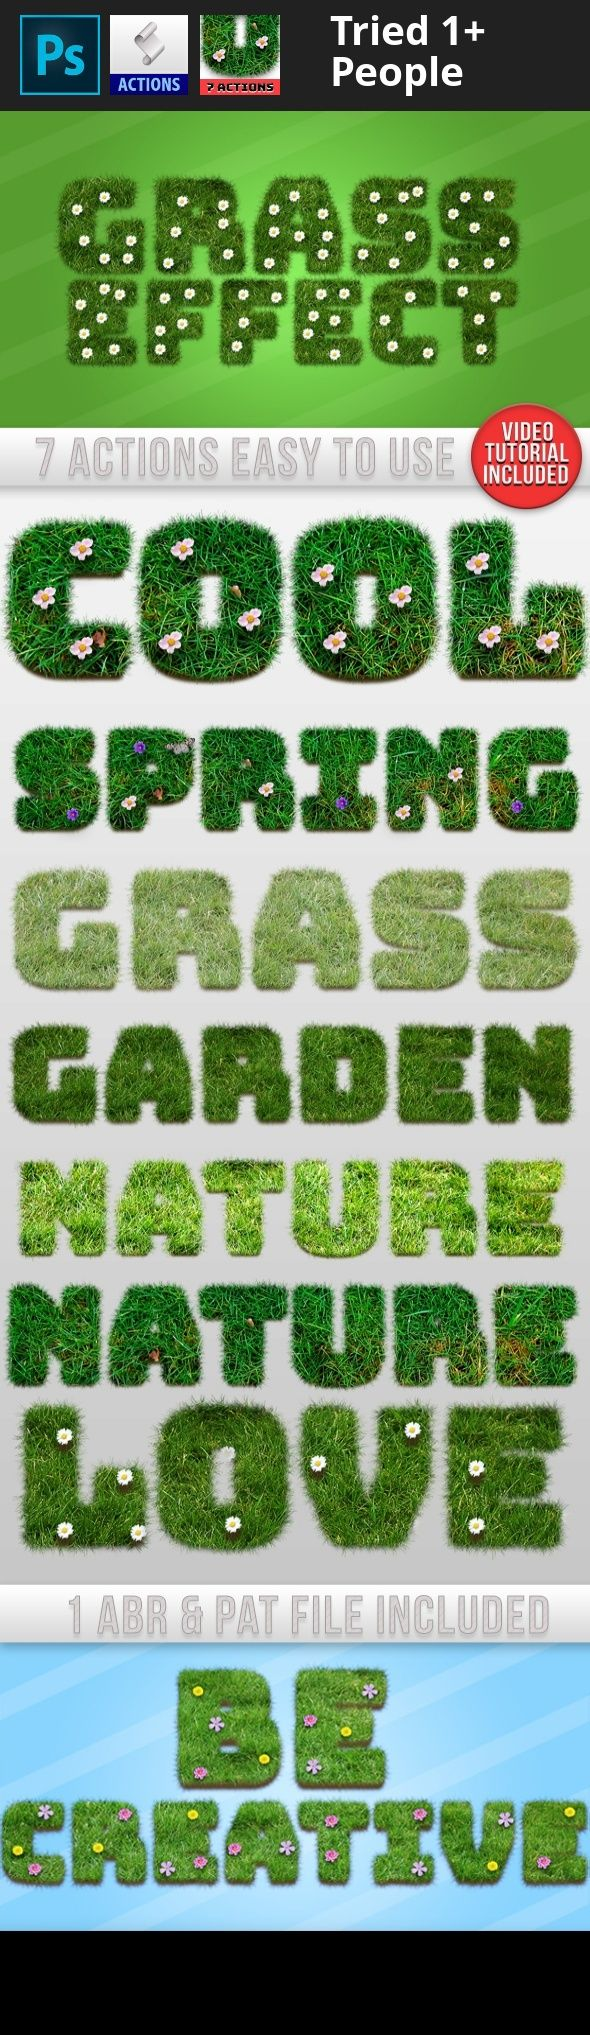 action, brush, butterfly, flower, flowers, garden, generator, grass, grass text effect, grass texture, green, ground, mud, nature, pattern, photorealistic, realistic, spring, style, text, text action, text effect 7 Photoshop Actions Grass Text Generator : High quality actions for your projects Very simple to edit & use.Very simple to use : Follow the tutorial here :     Inside the ZIP file :  7 Photoshop Actions in the ATN file 1 ABR file 1 PAT file A help text file  For best results :...